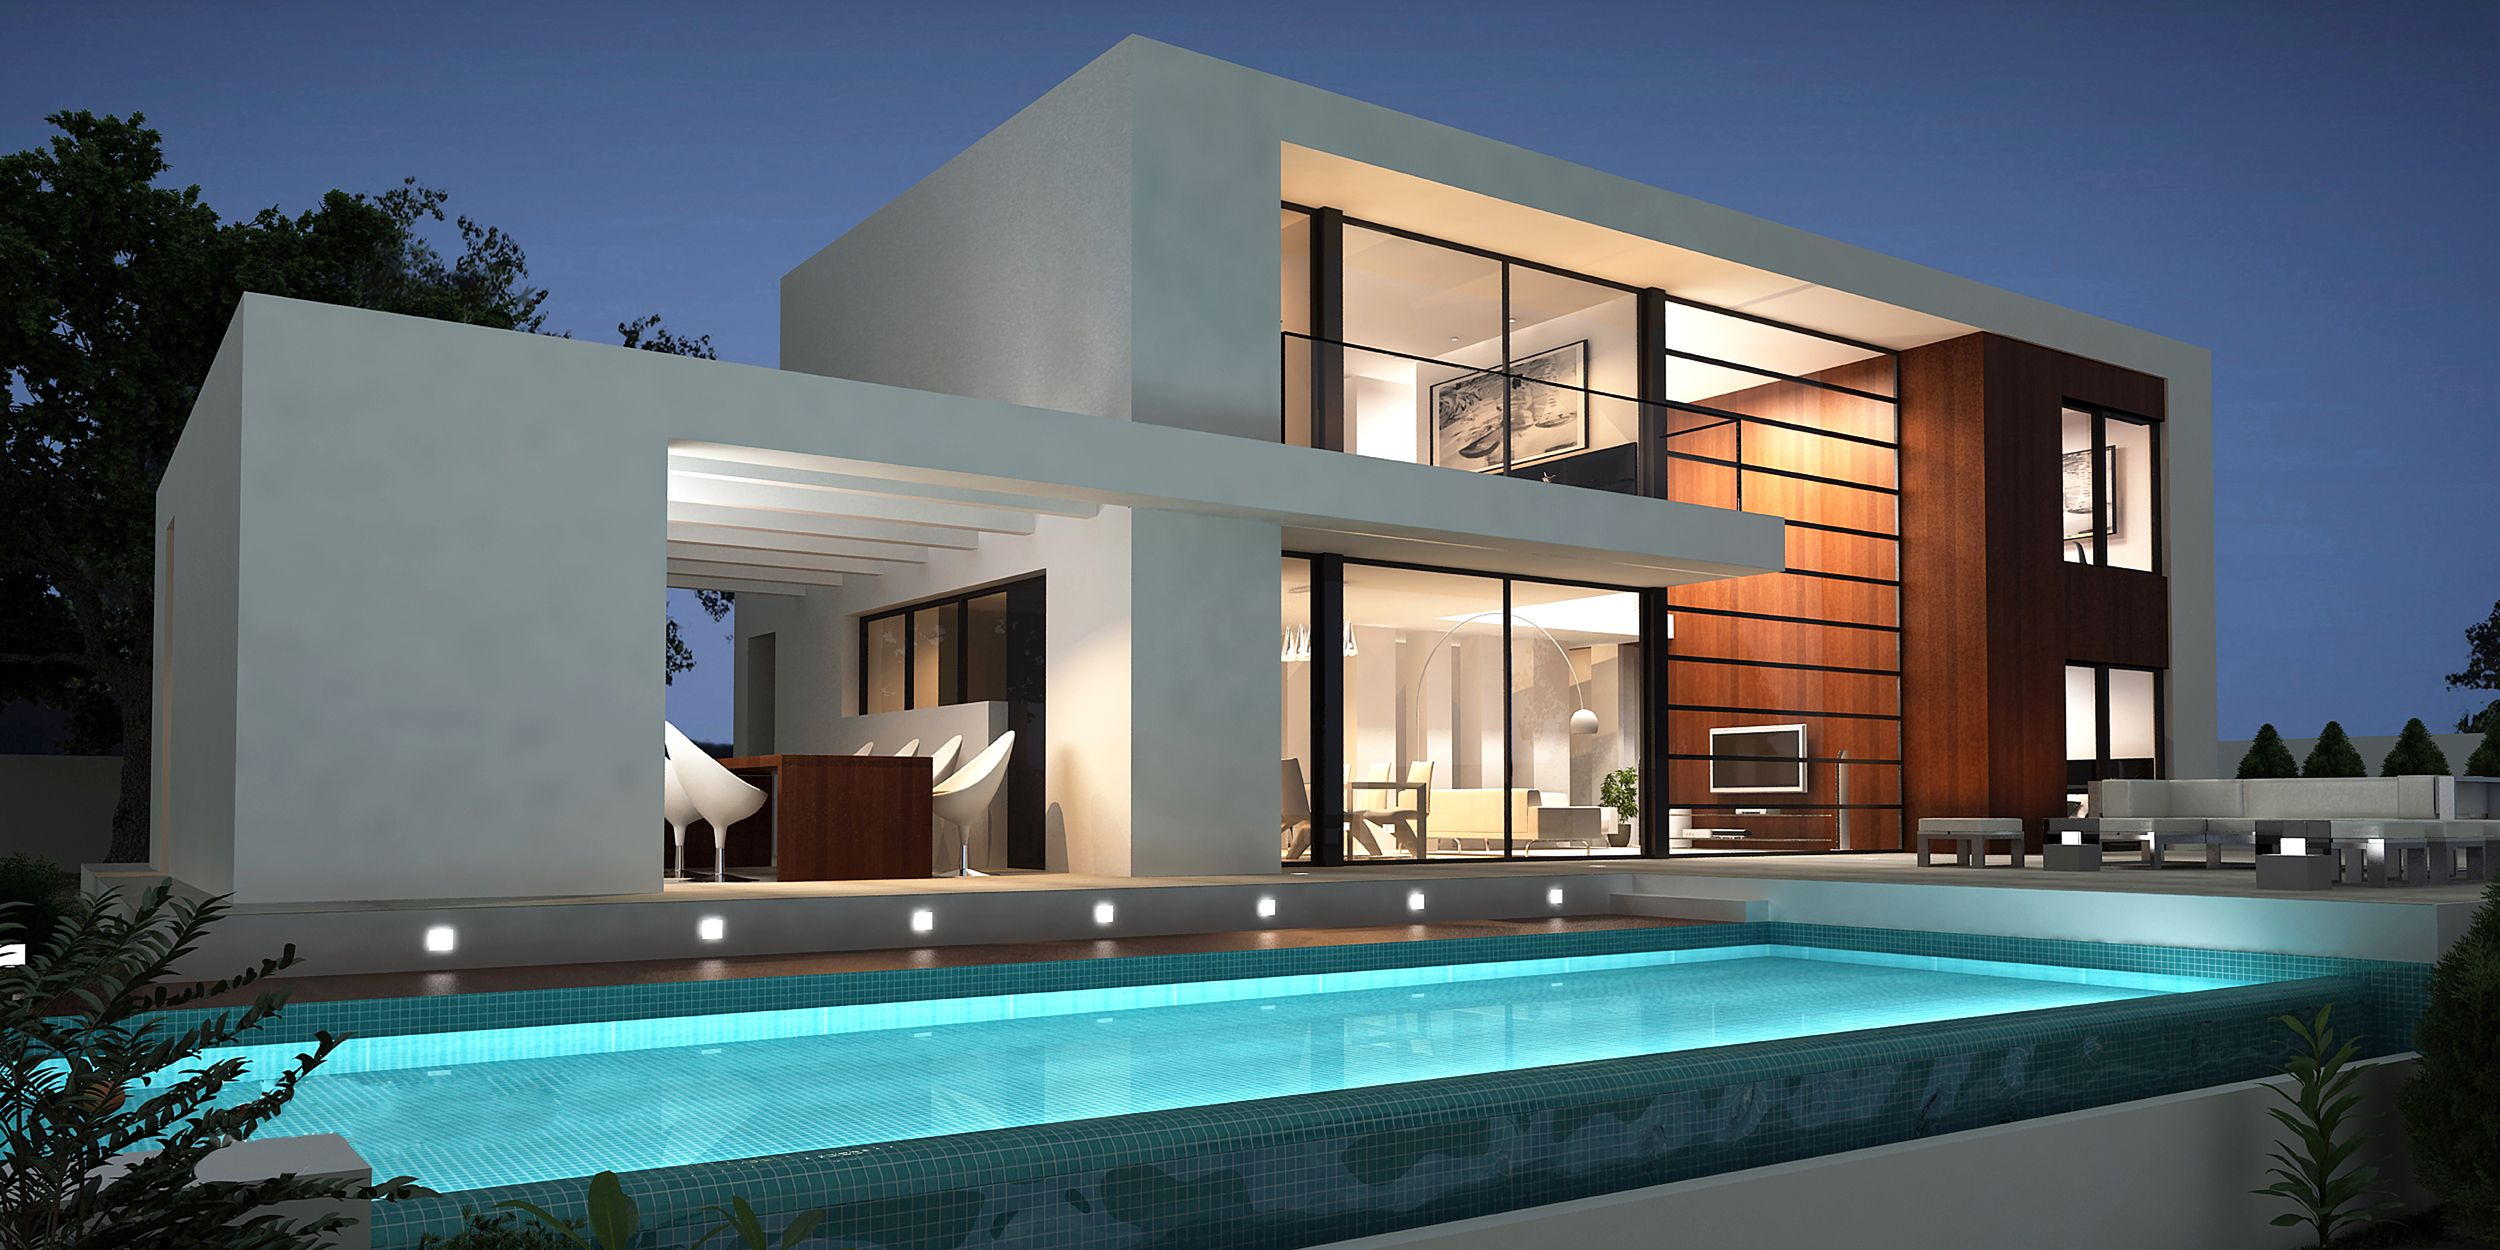 Villa modern google suche modern architecture for Modern architecture homes